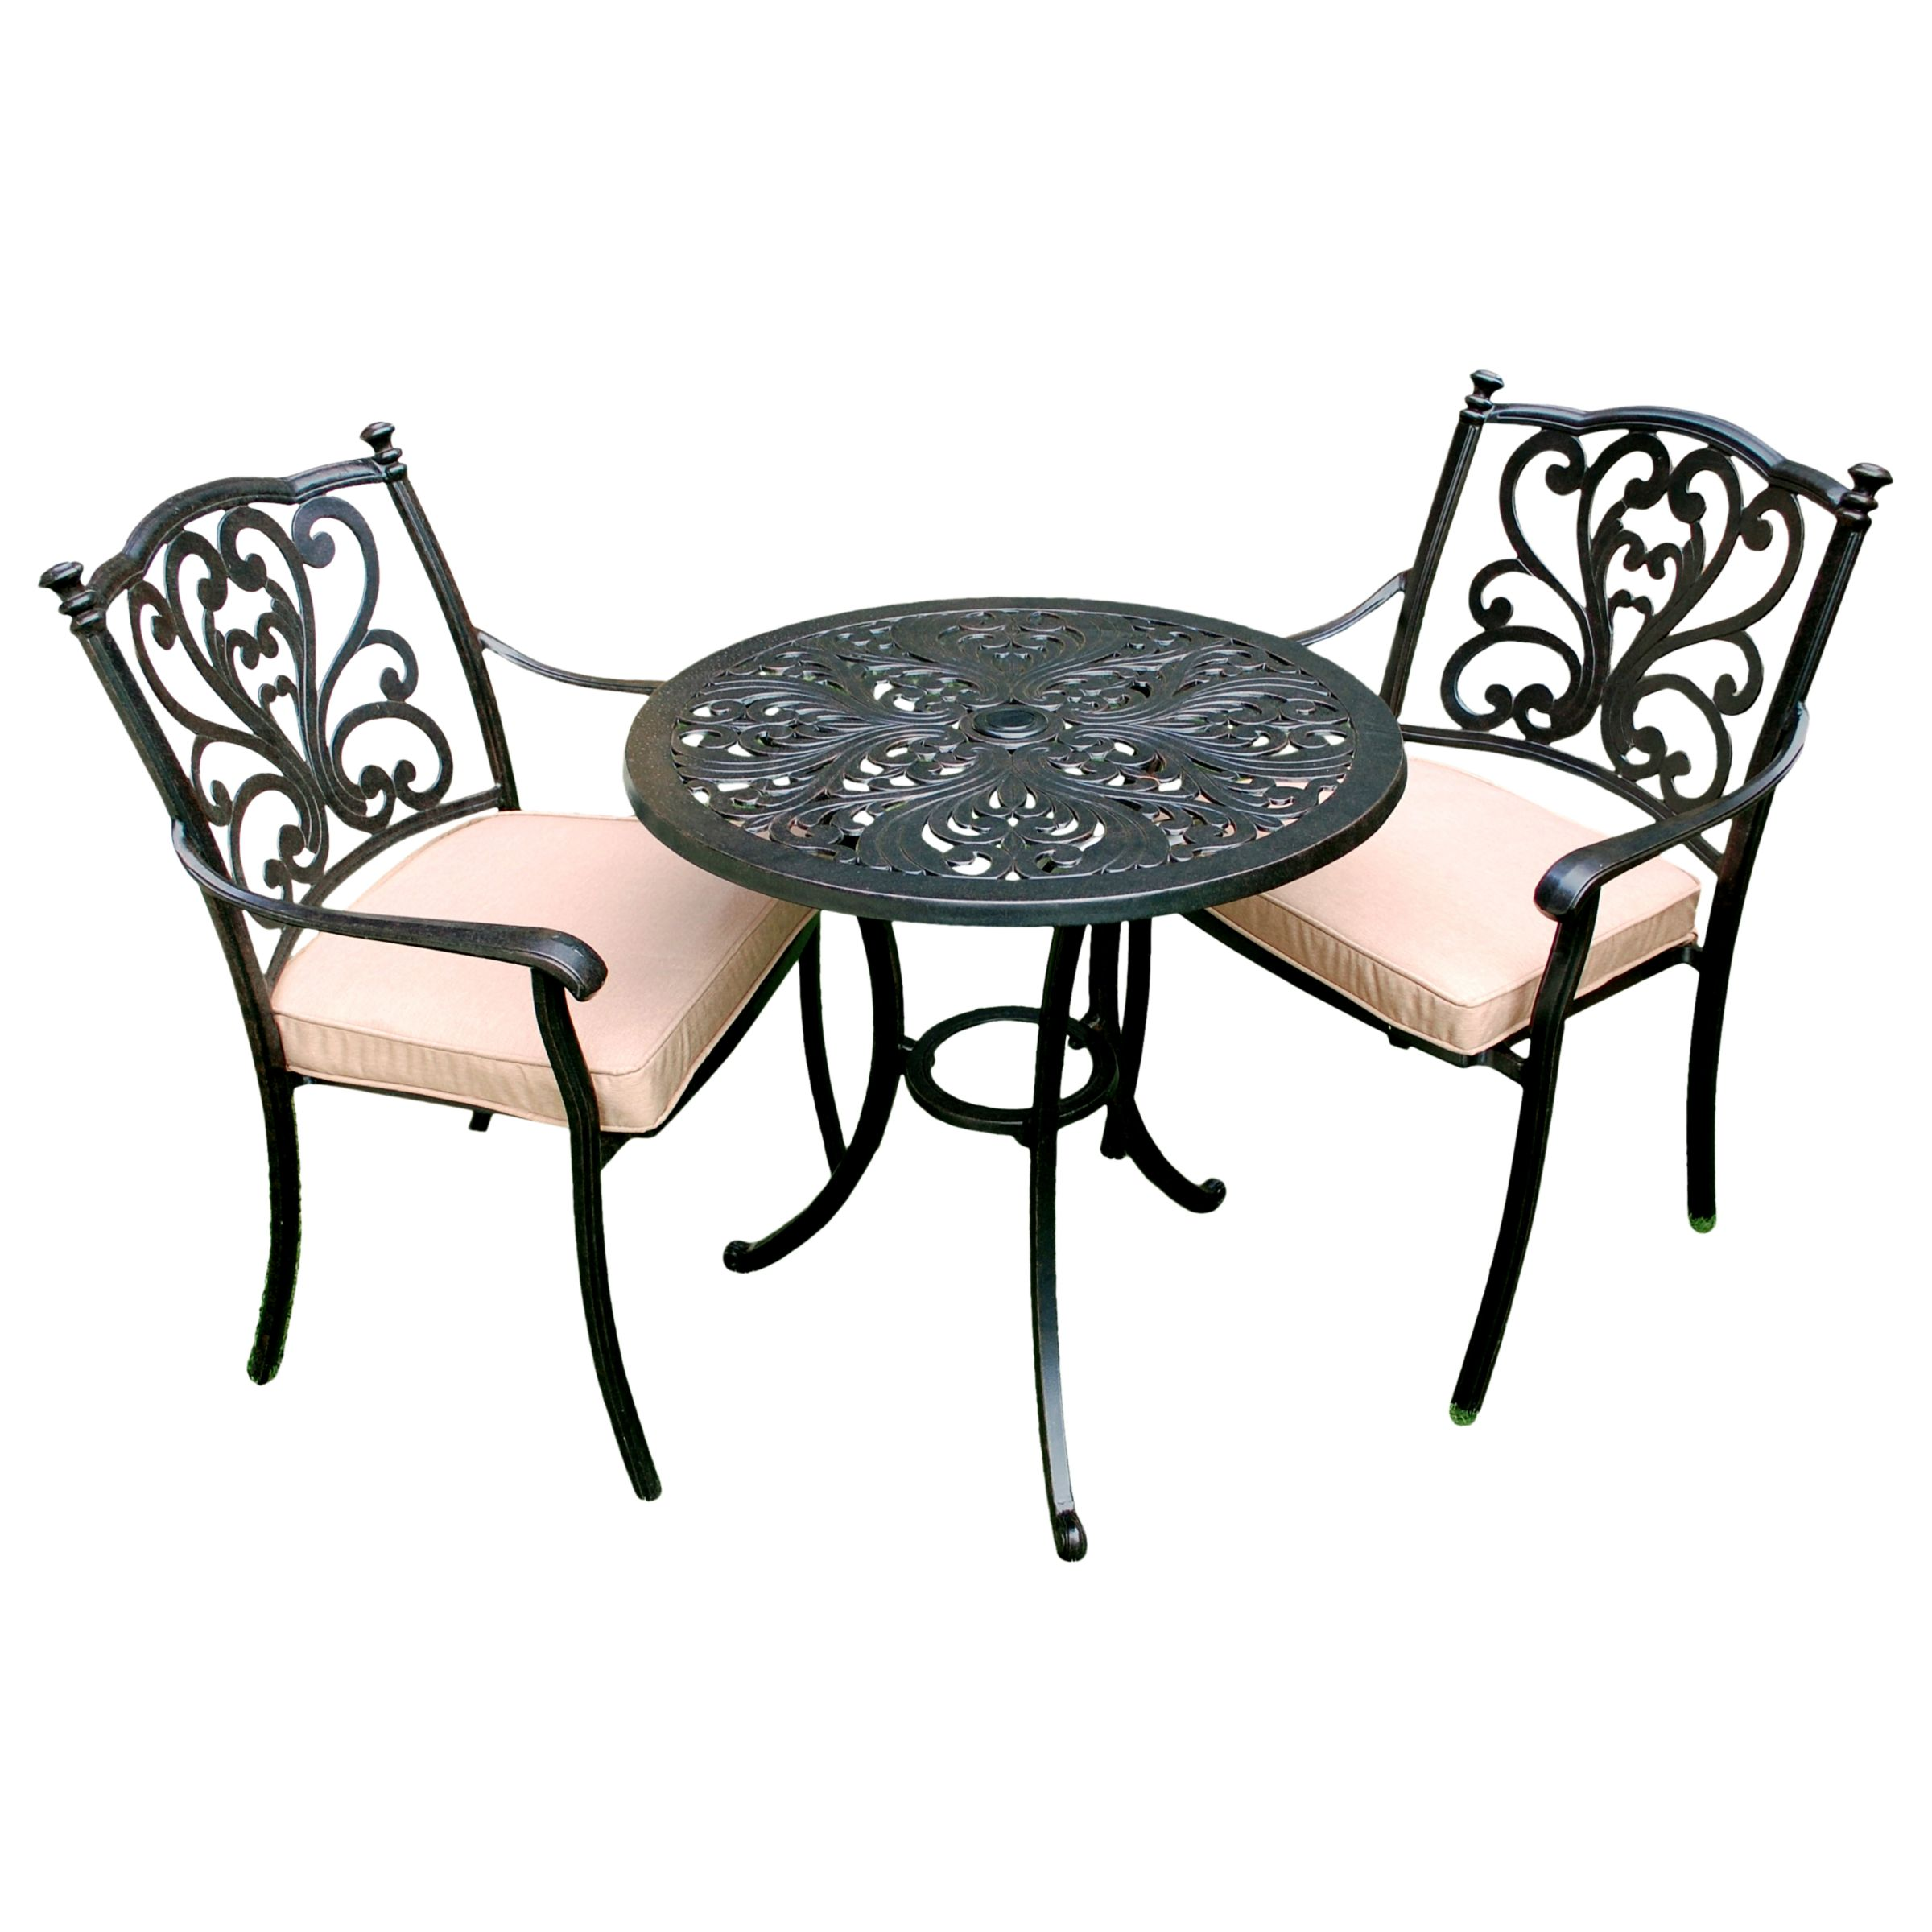 LG Outdoor LG Outdoor Devon 2 Seater Garden Bistro Table and Chairs Set, Bronze